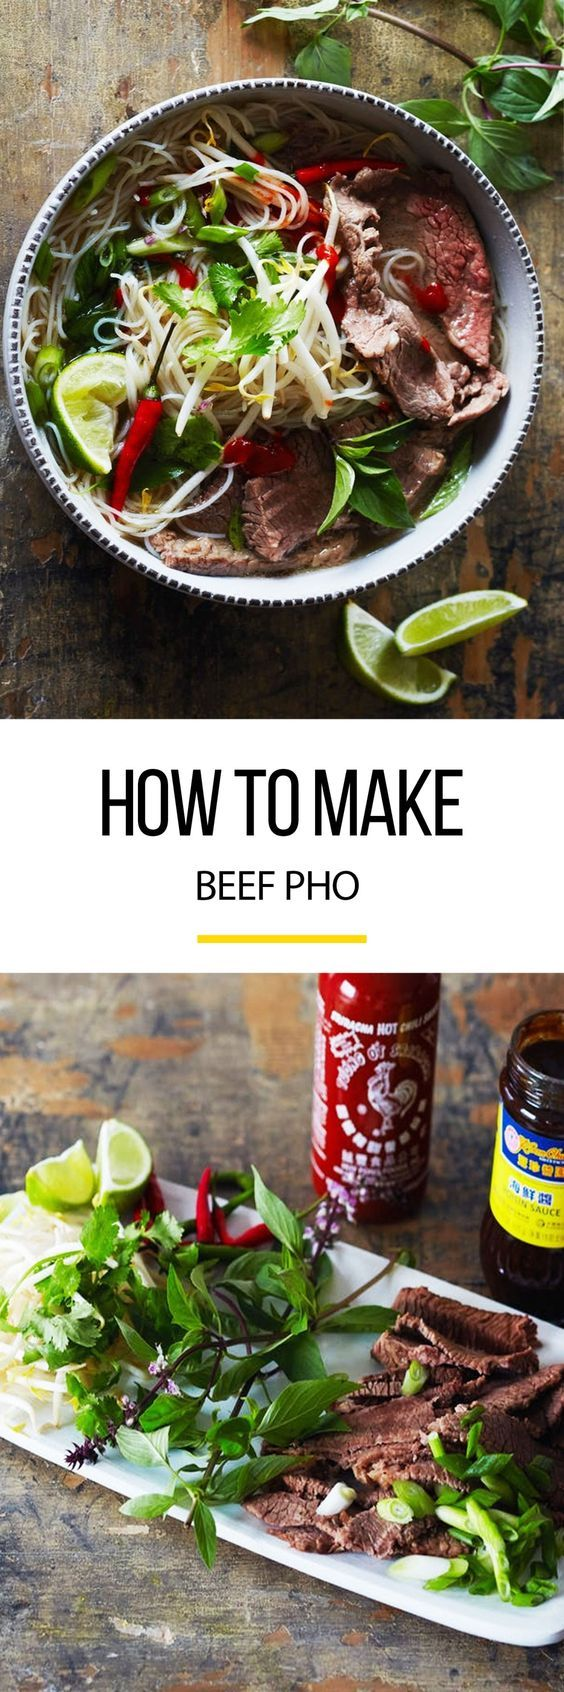 This beef pho recipe is a long process, but it's so worth it! This slow cooking and slow simmer soup is comfort food at it's finest. The step by step tutorial will ensure perfect pho every time! Great if you're looking for recipes to use up beef knuckle or shank.